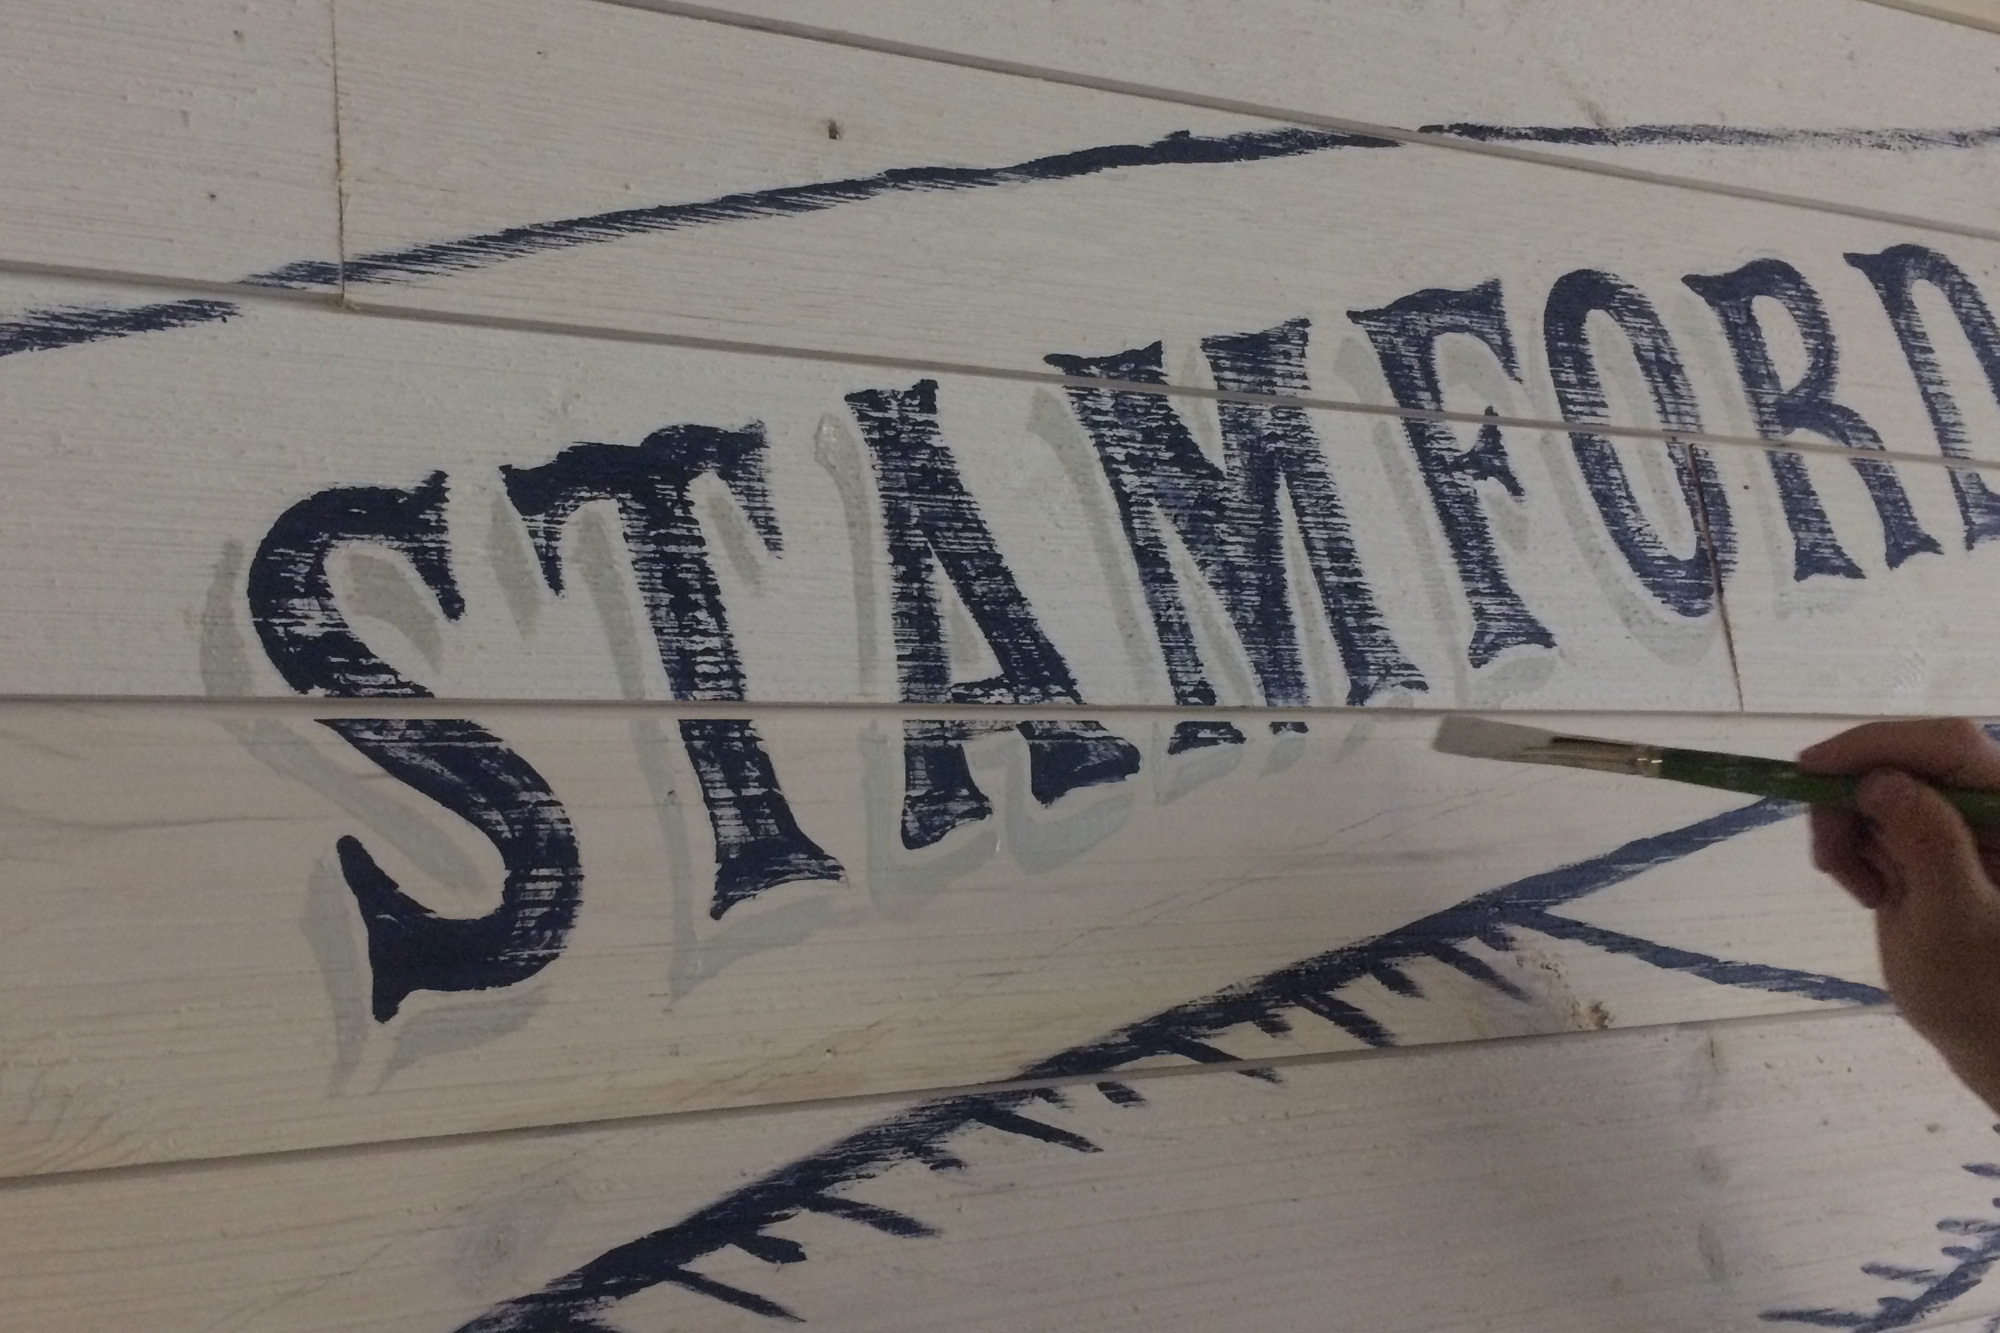 Indeed Stamford - Branded Environments & ArtUp